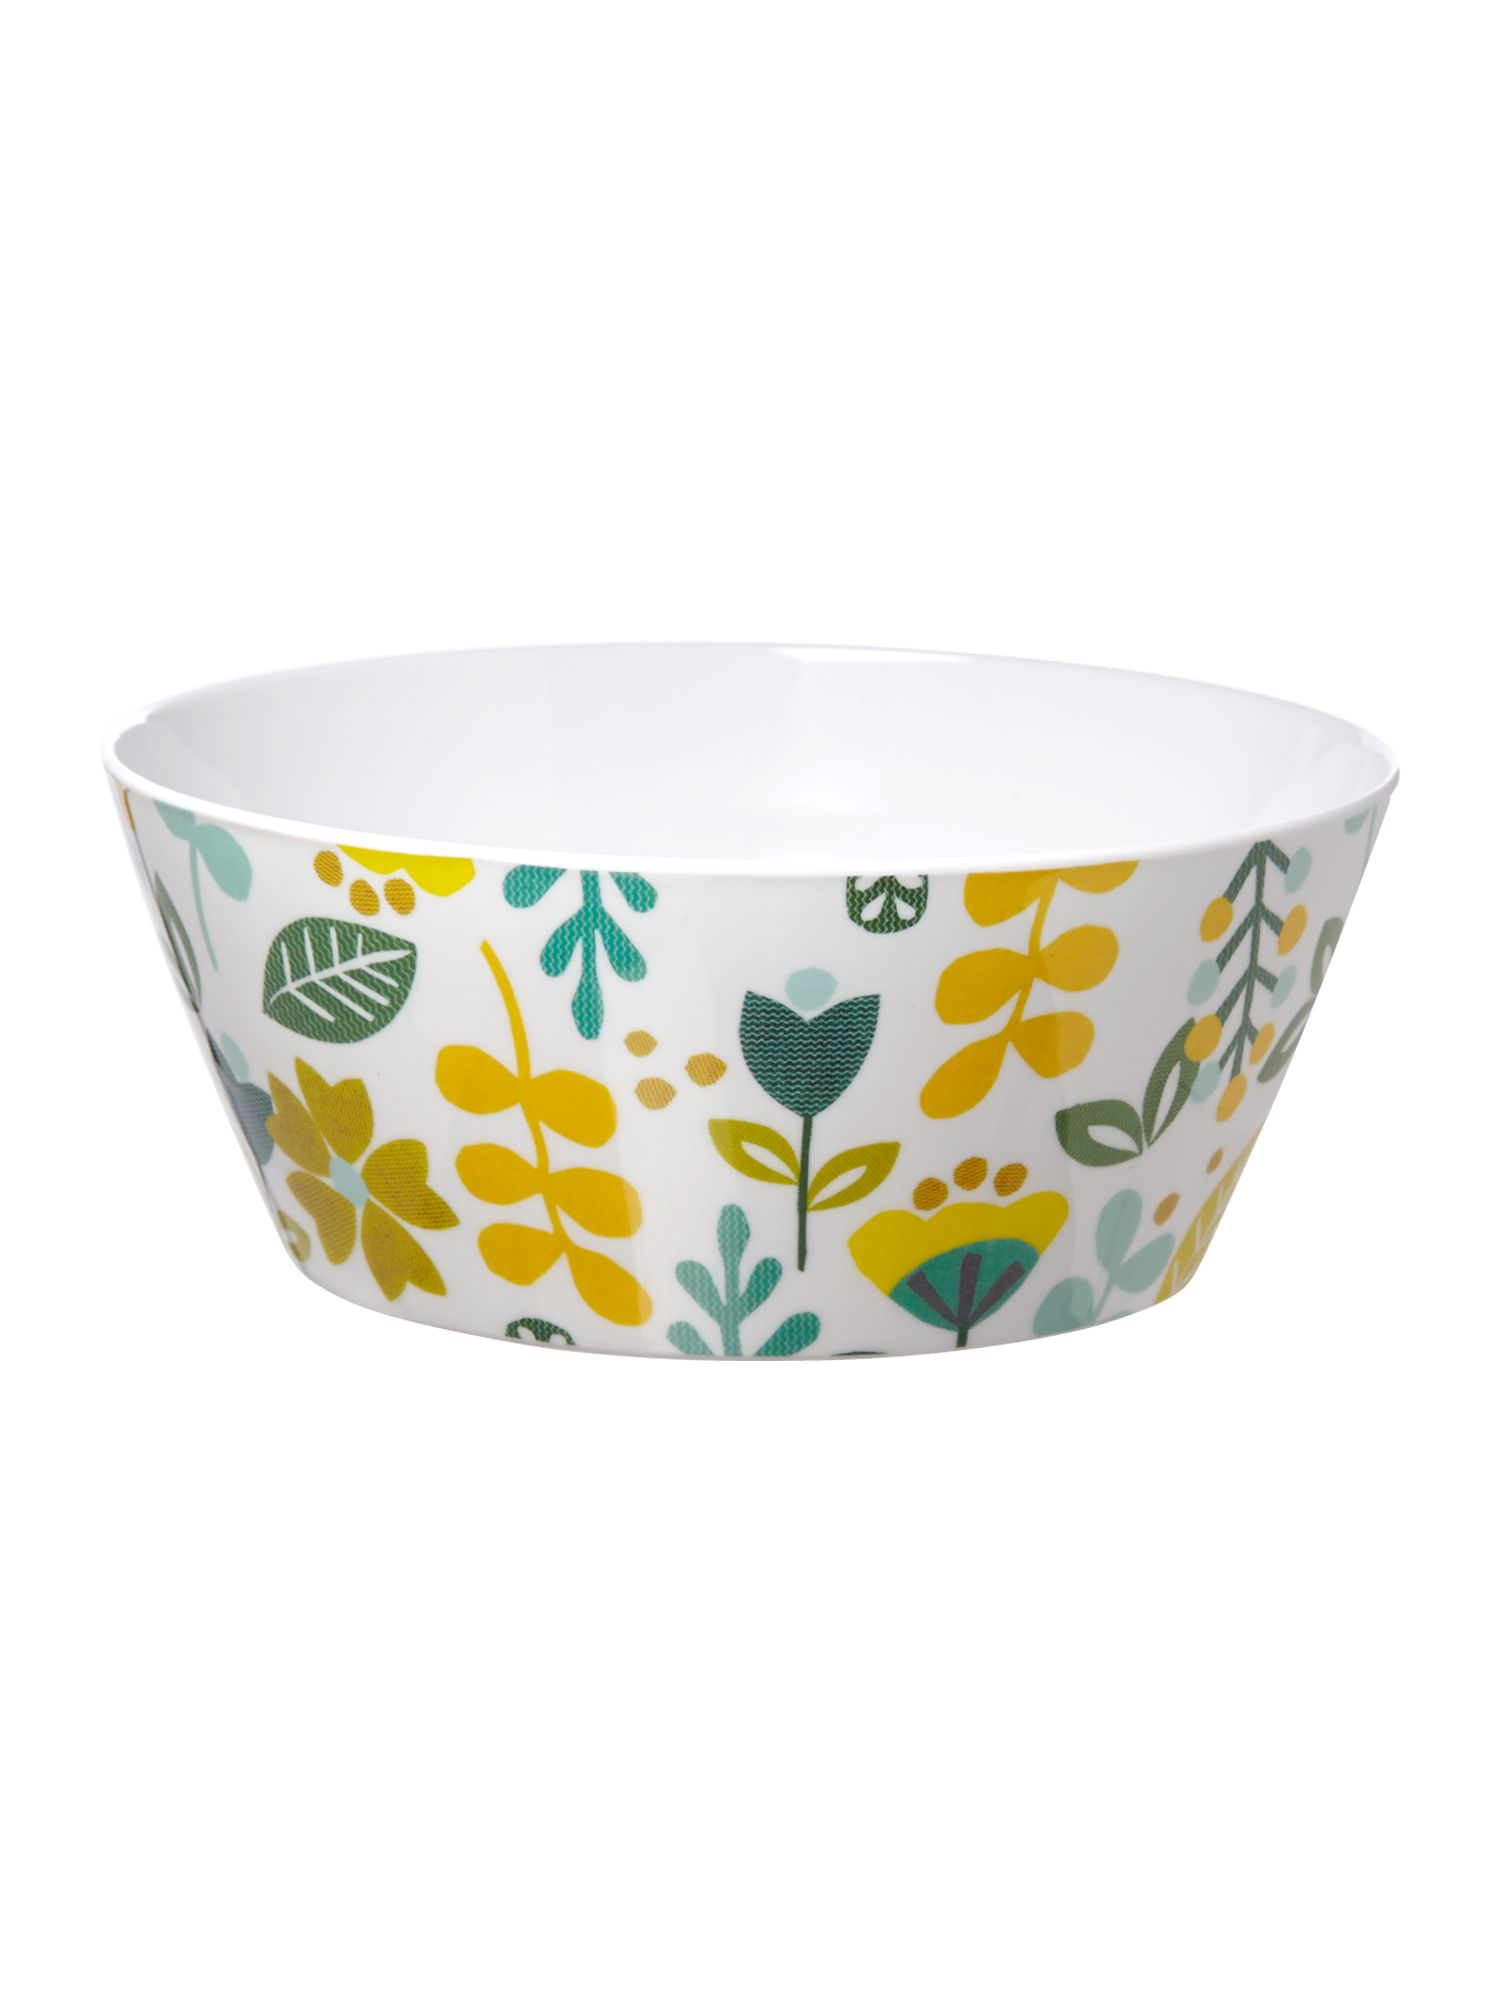 Urban explorer melamine bowl